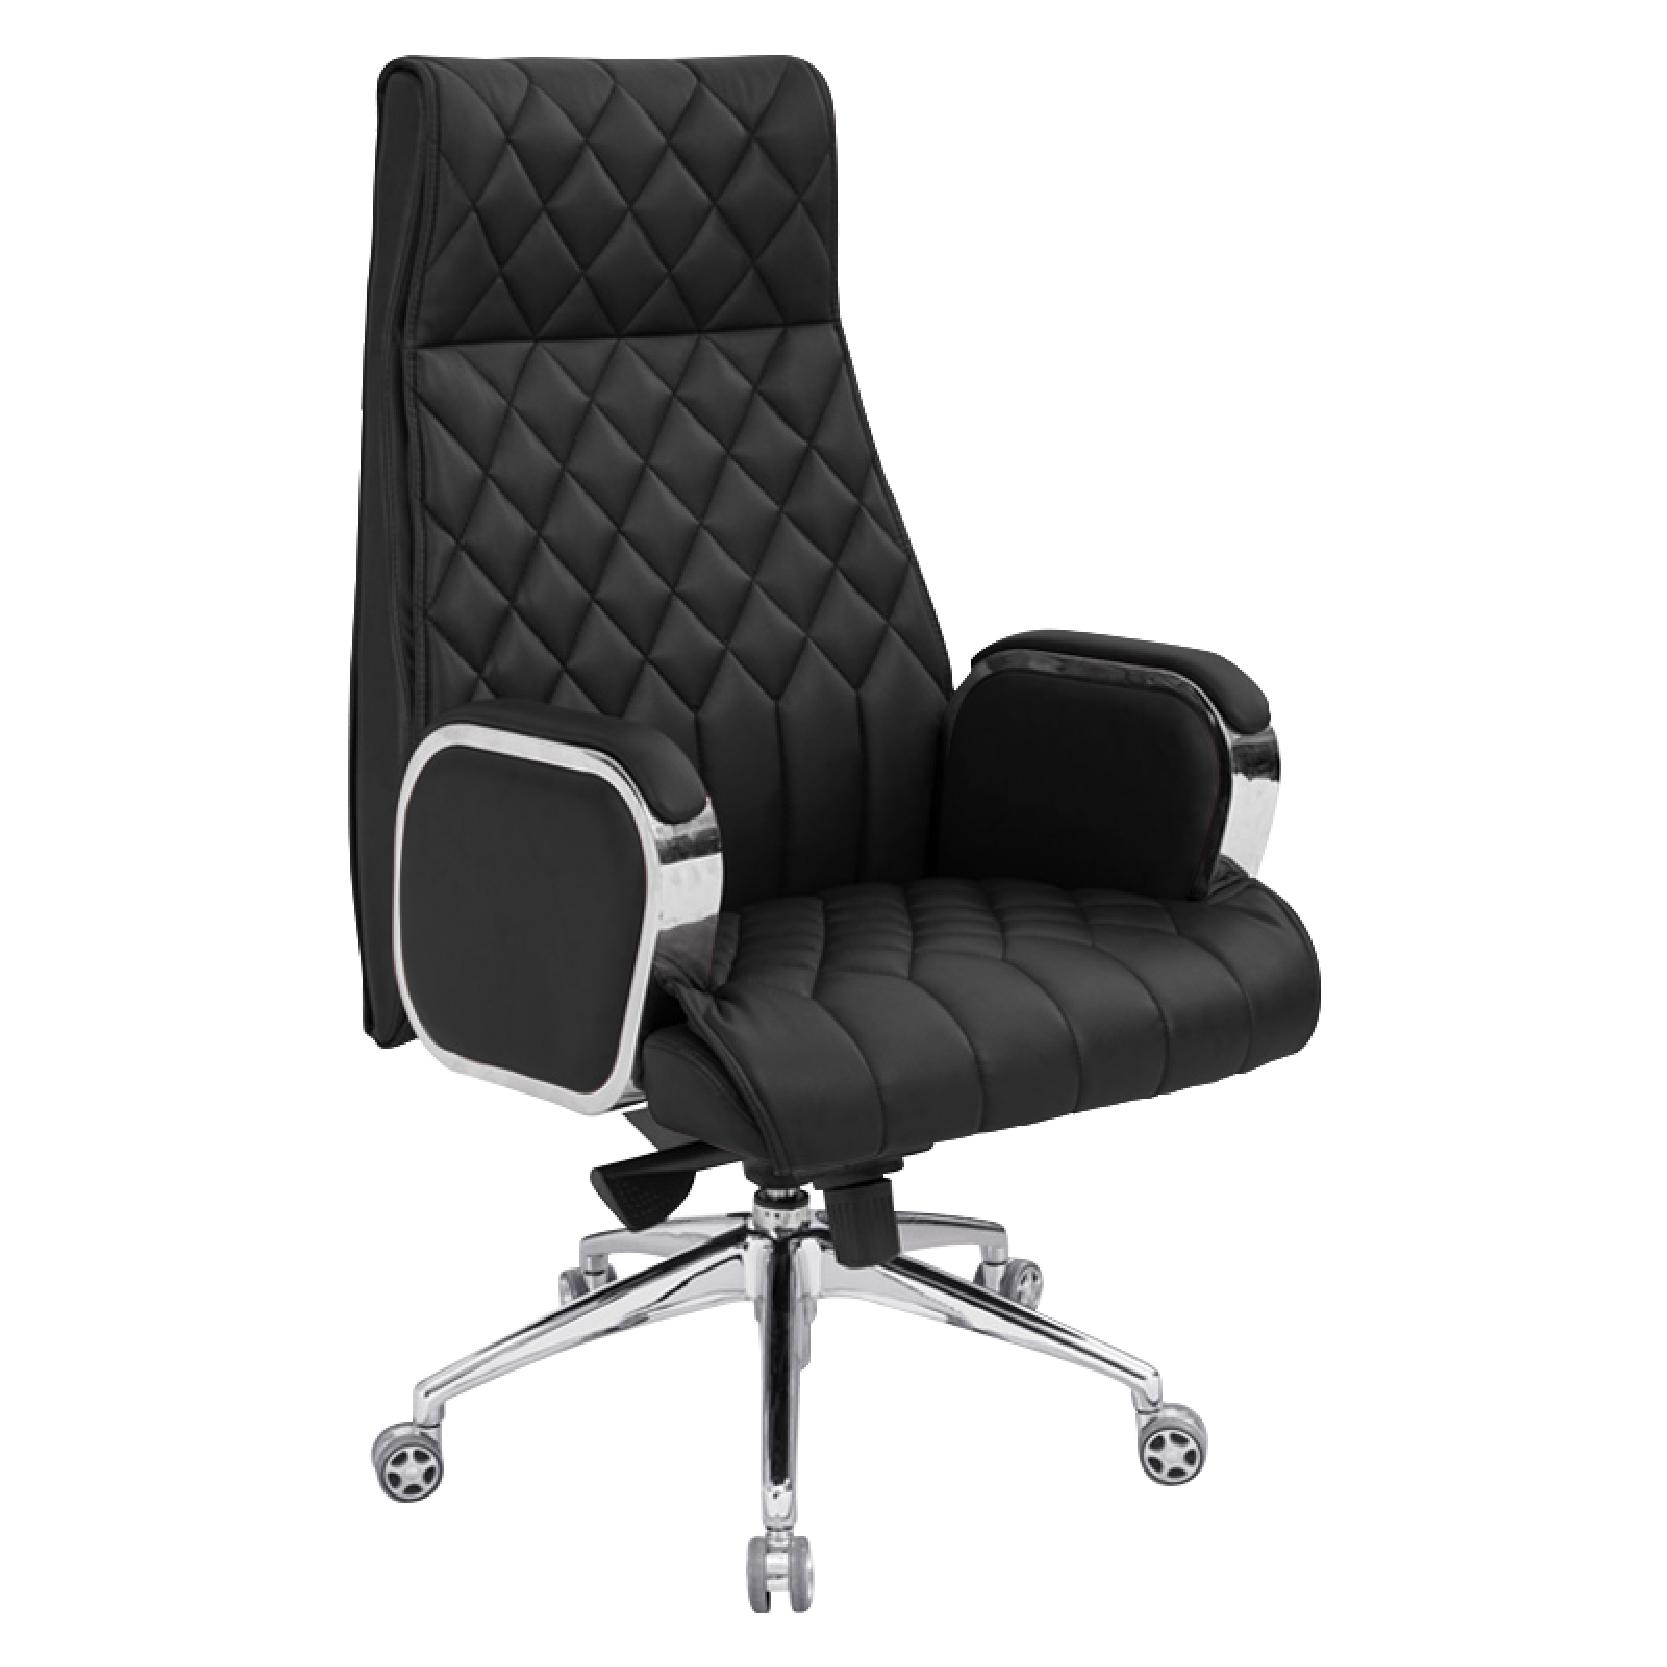 JIJI Office Chair President Office Chair V2 (Free Installation) - Supreme ★Leather ★Office Furniture ★Grand ★Ergonomic ★Quality / Free 6 Months Warranty (SG) Singapore